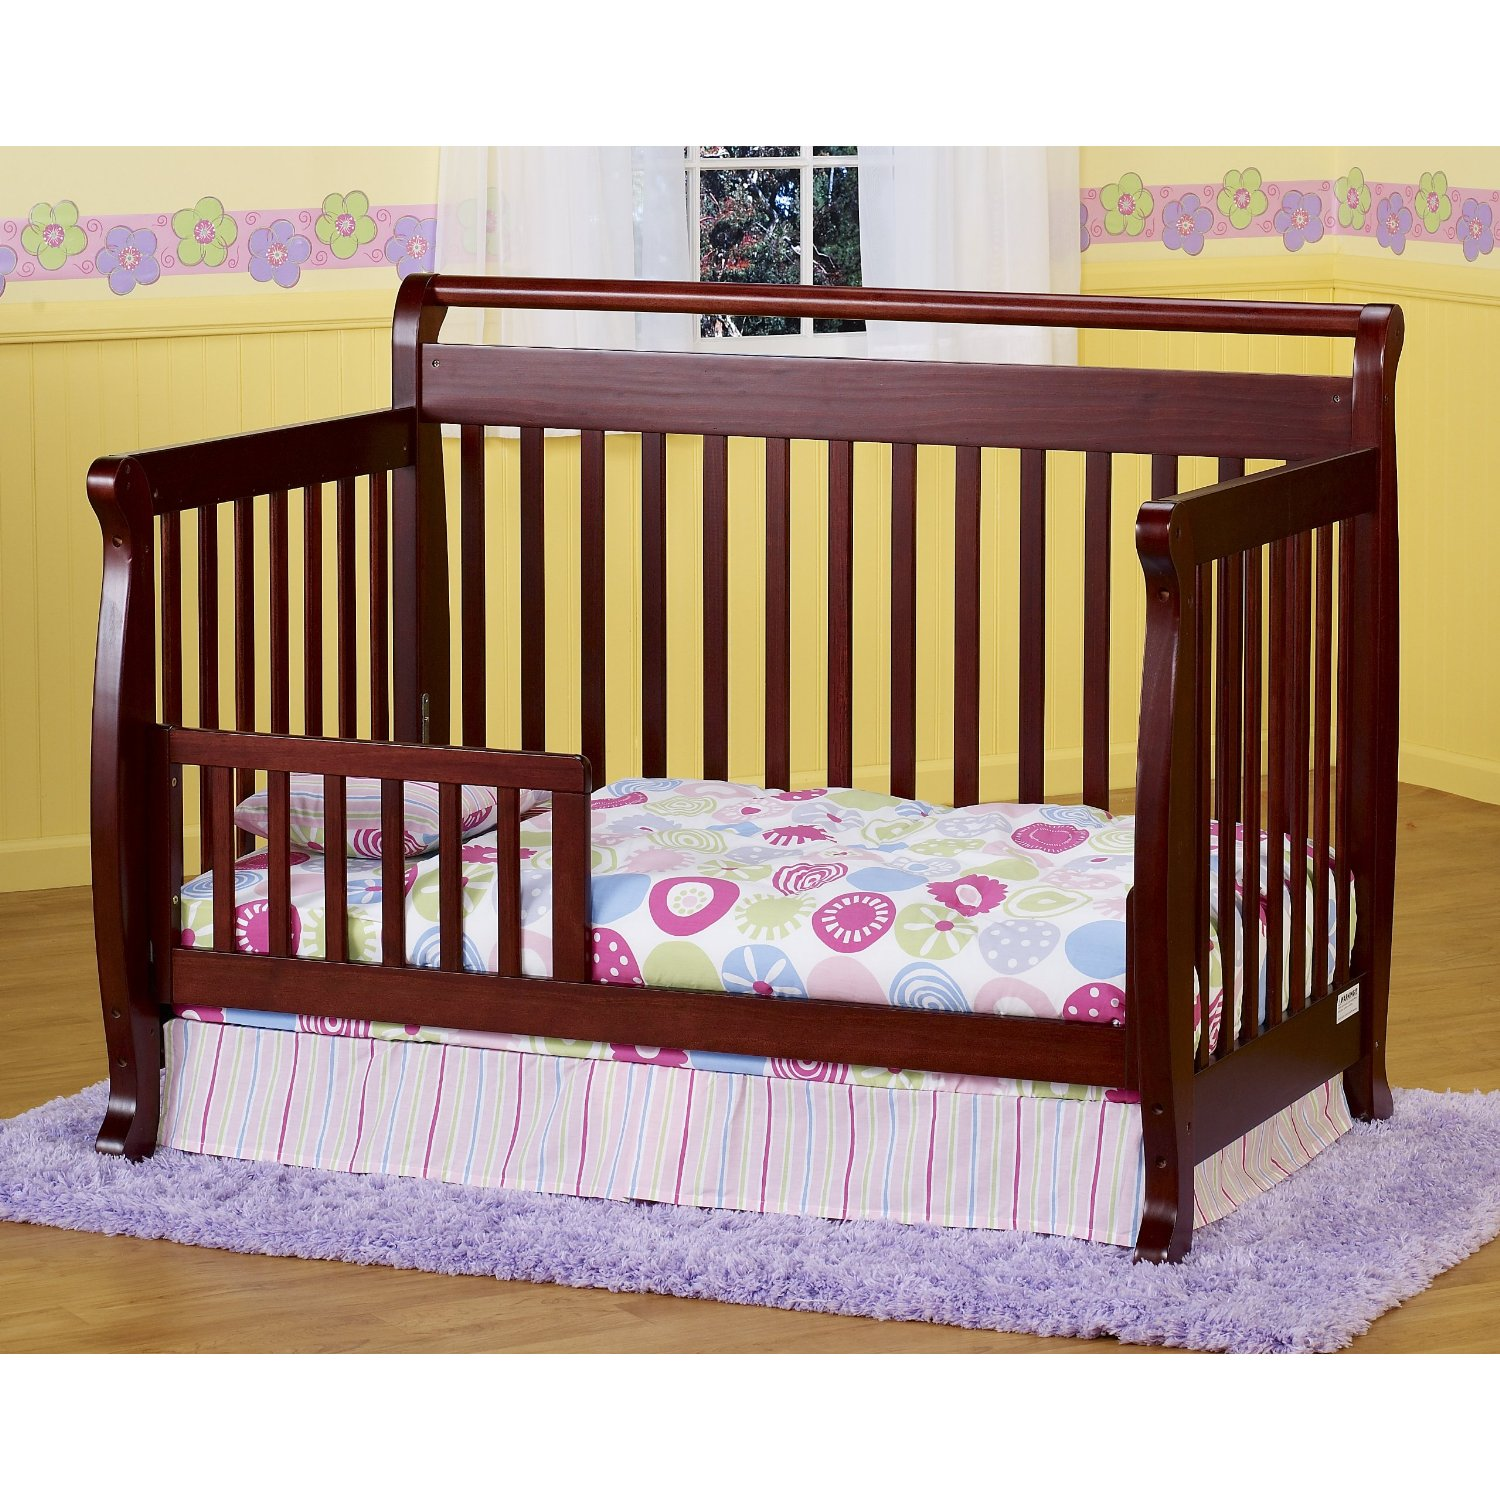 5 Cool Cribs That Convert To Full Beds: 3 In 1 Baby Crib Plans